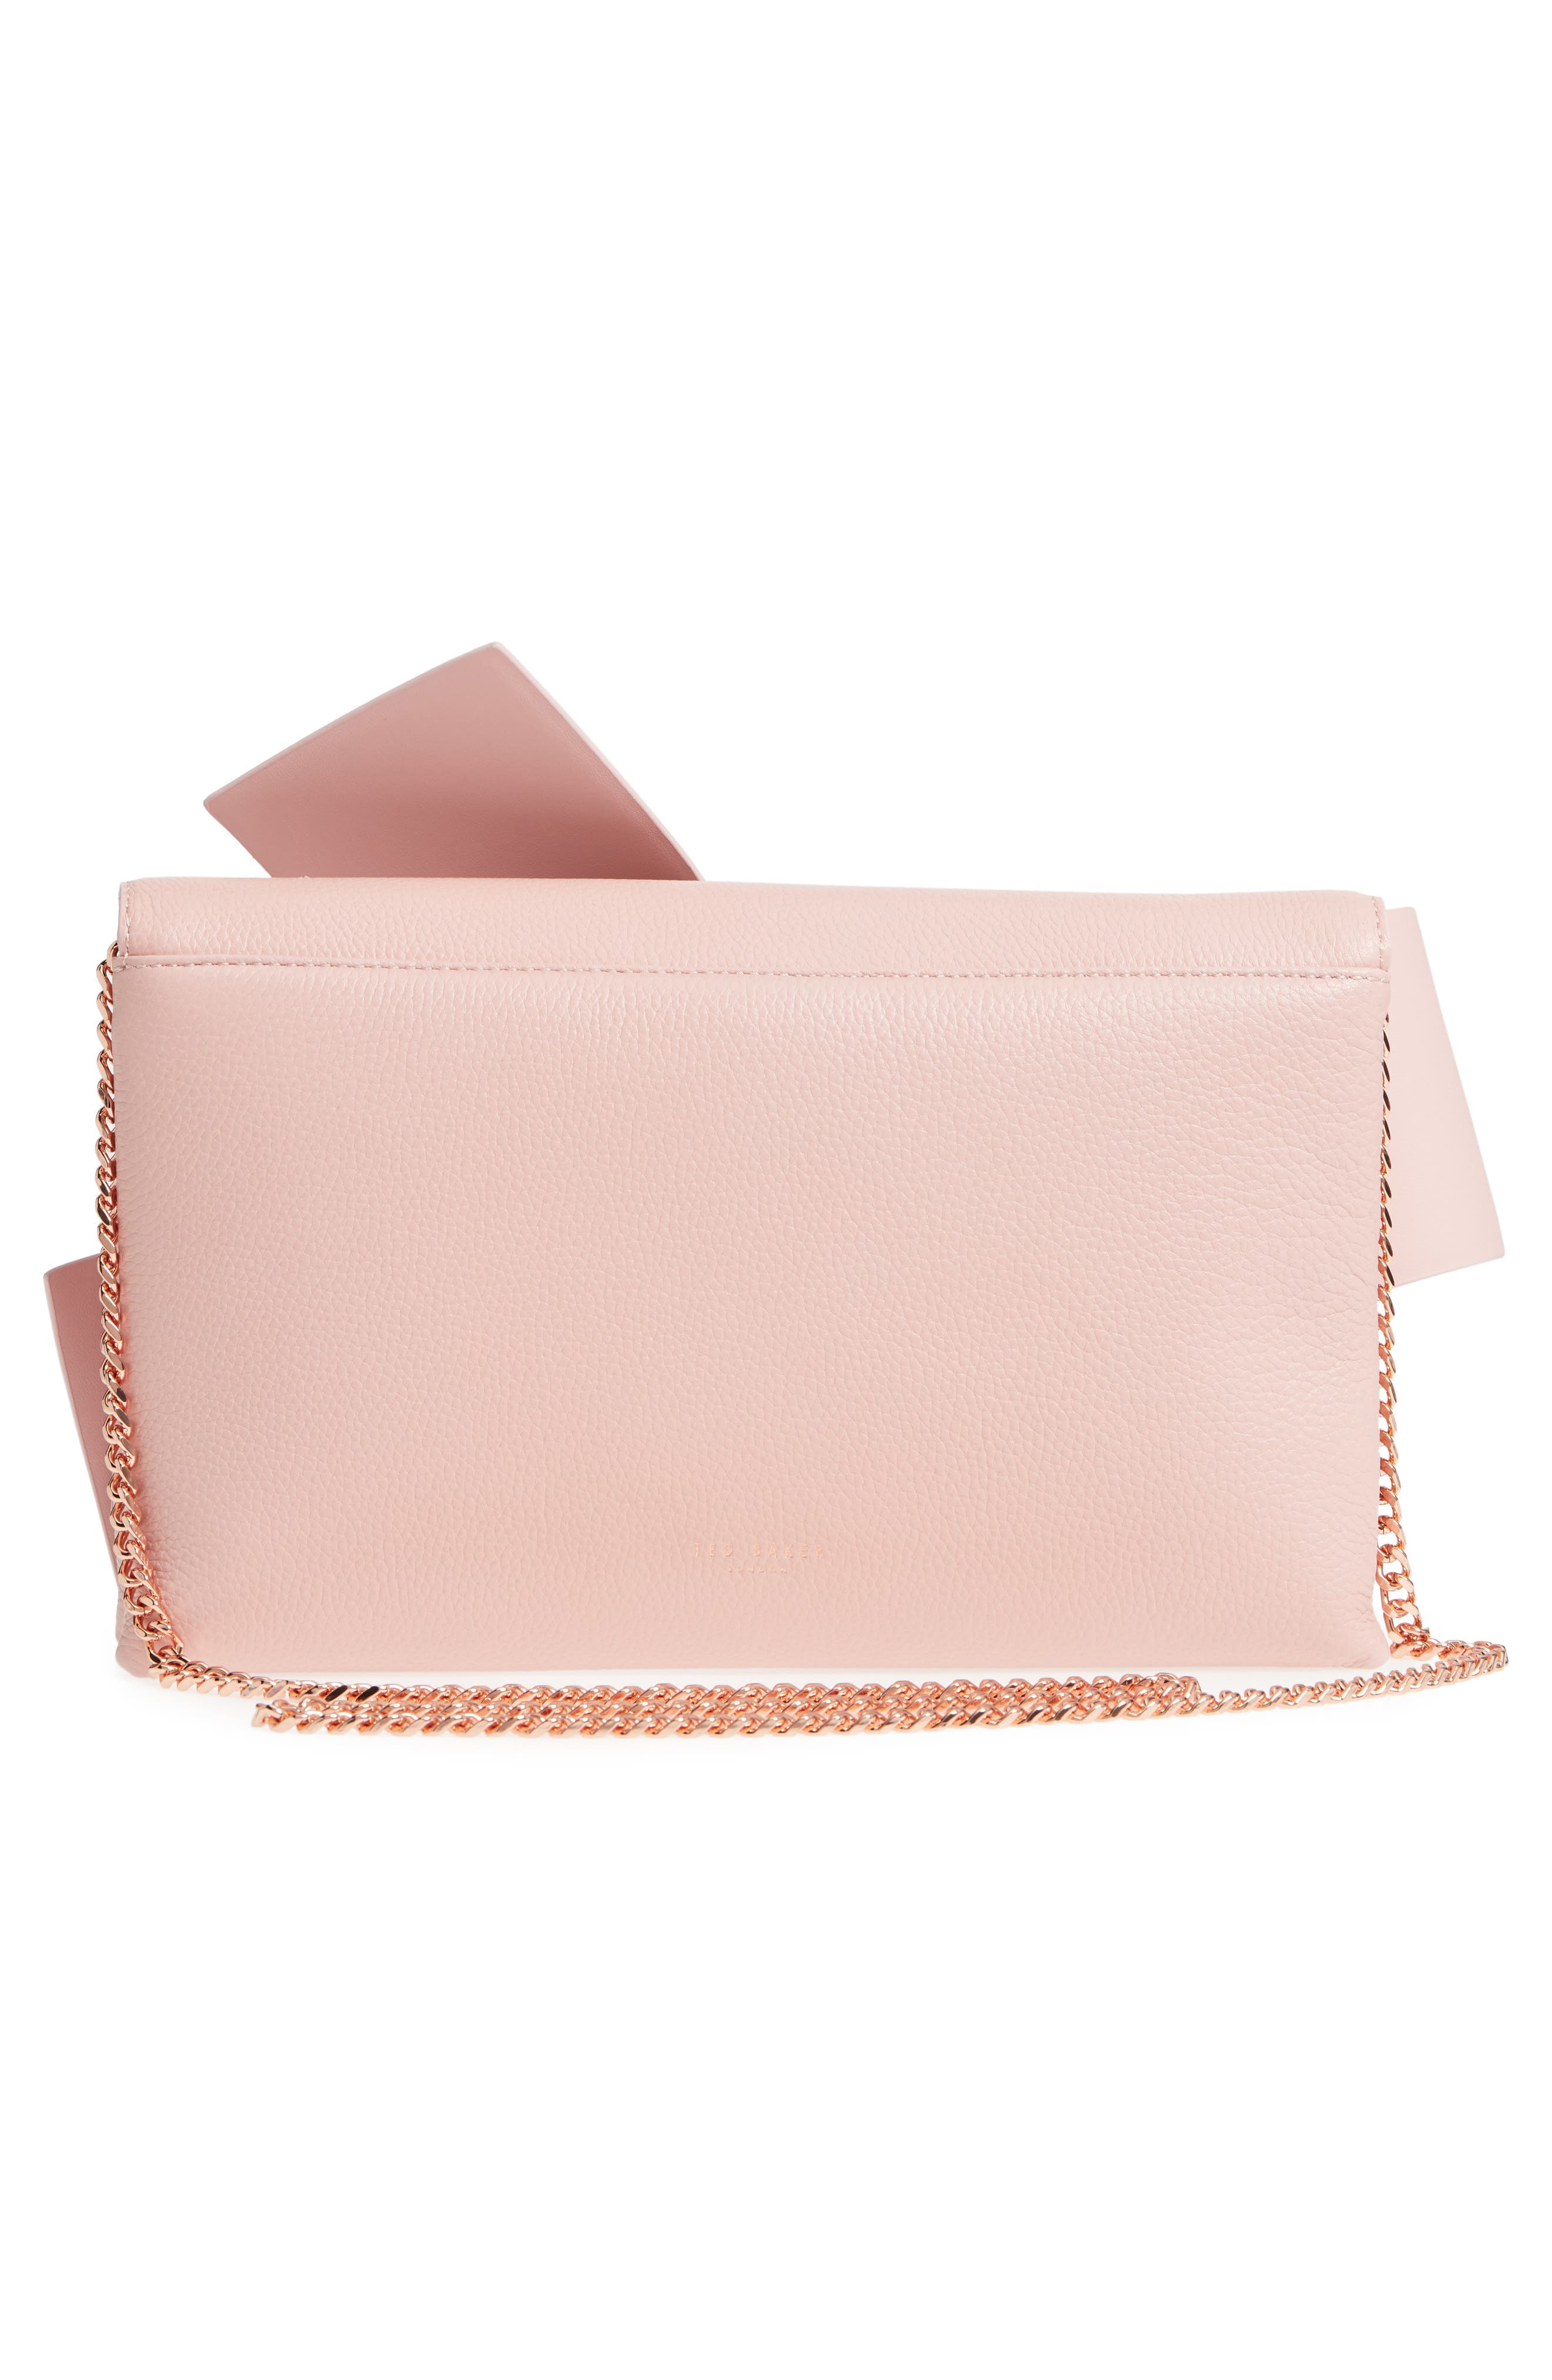 Knotted Bow Leather Clutch,                             Alternate thumbnail 3, color,                             Light Pink